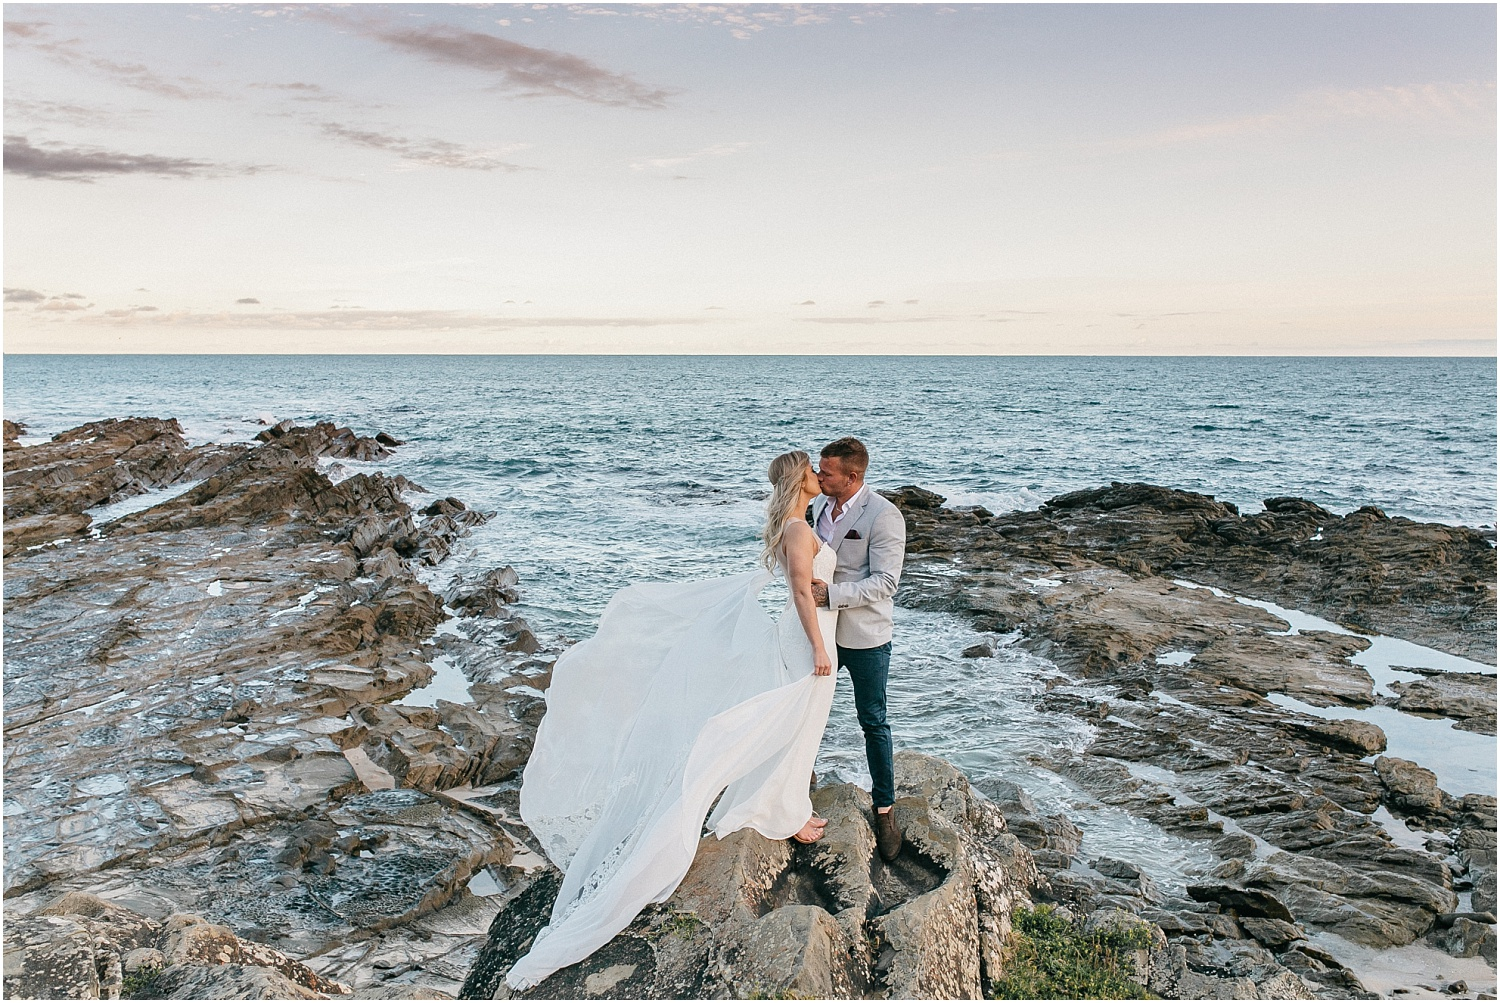 Renee and Ash's real elopement in Lorne on the Great Ocean Roadwith the ceremony at erskin falls._0106.jpg